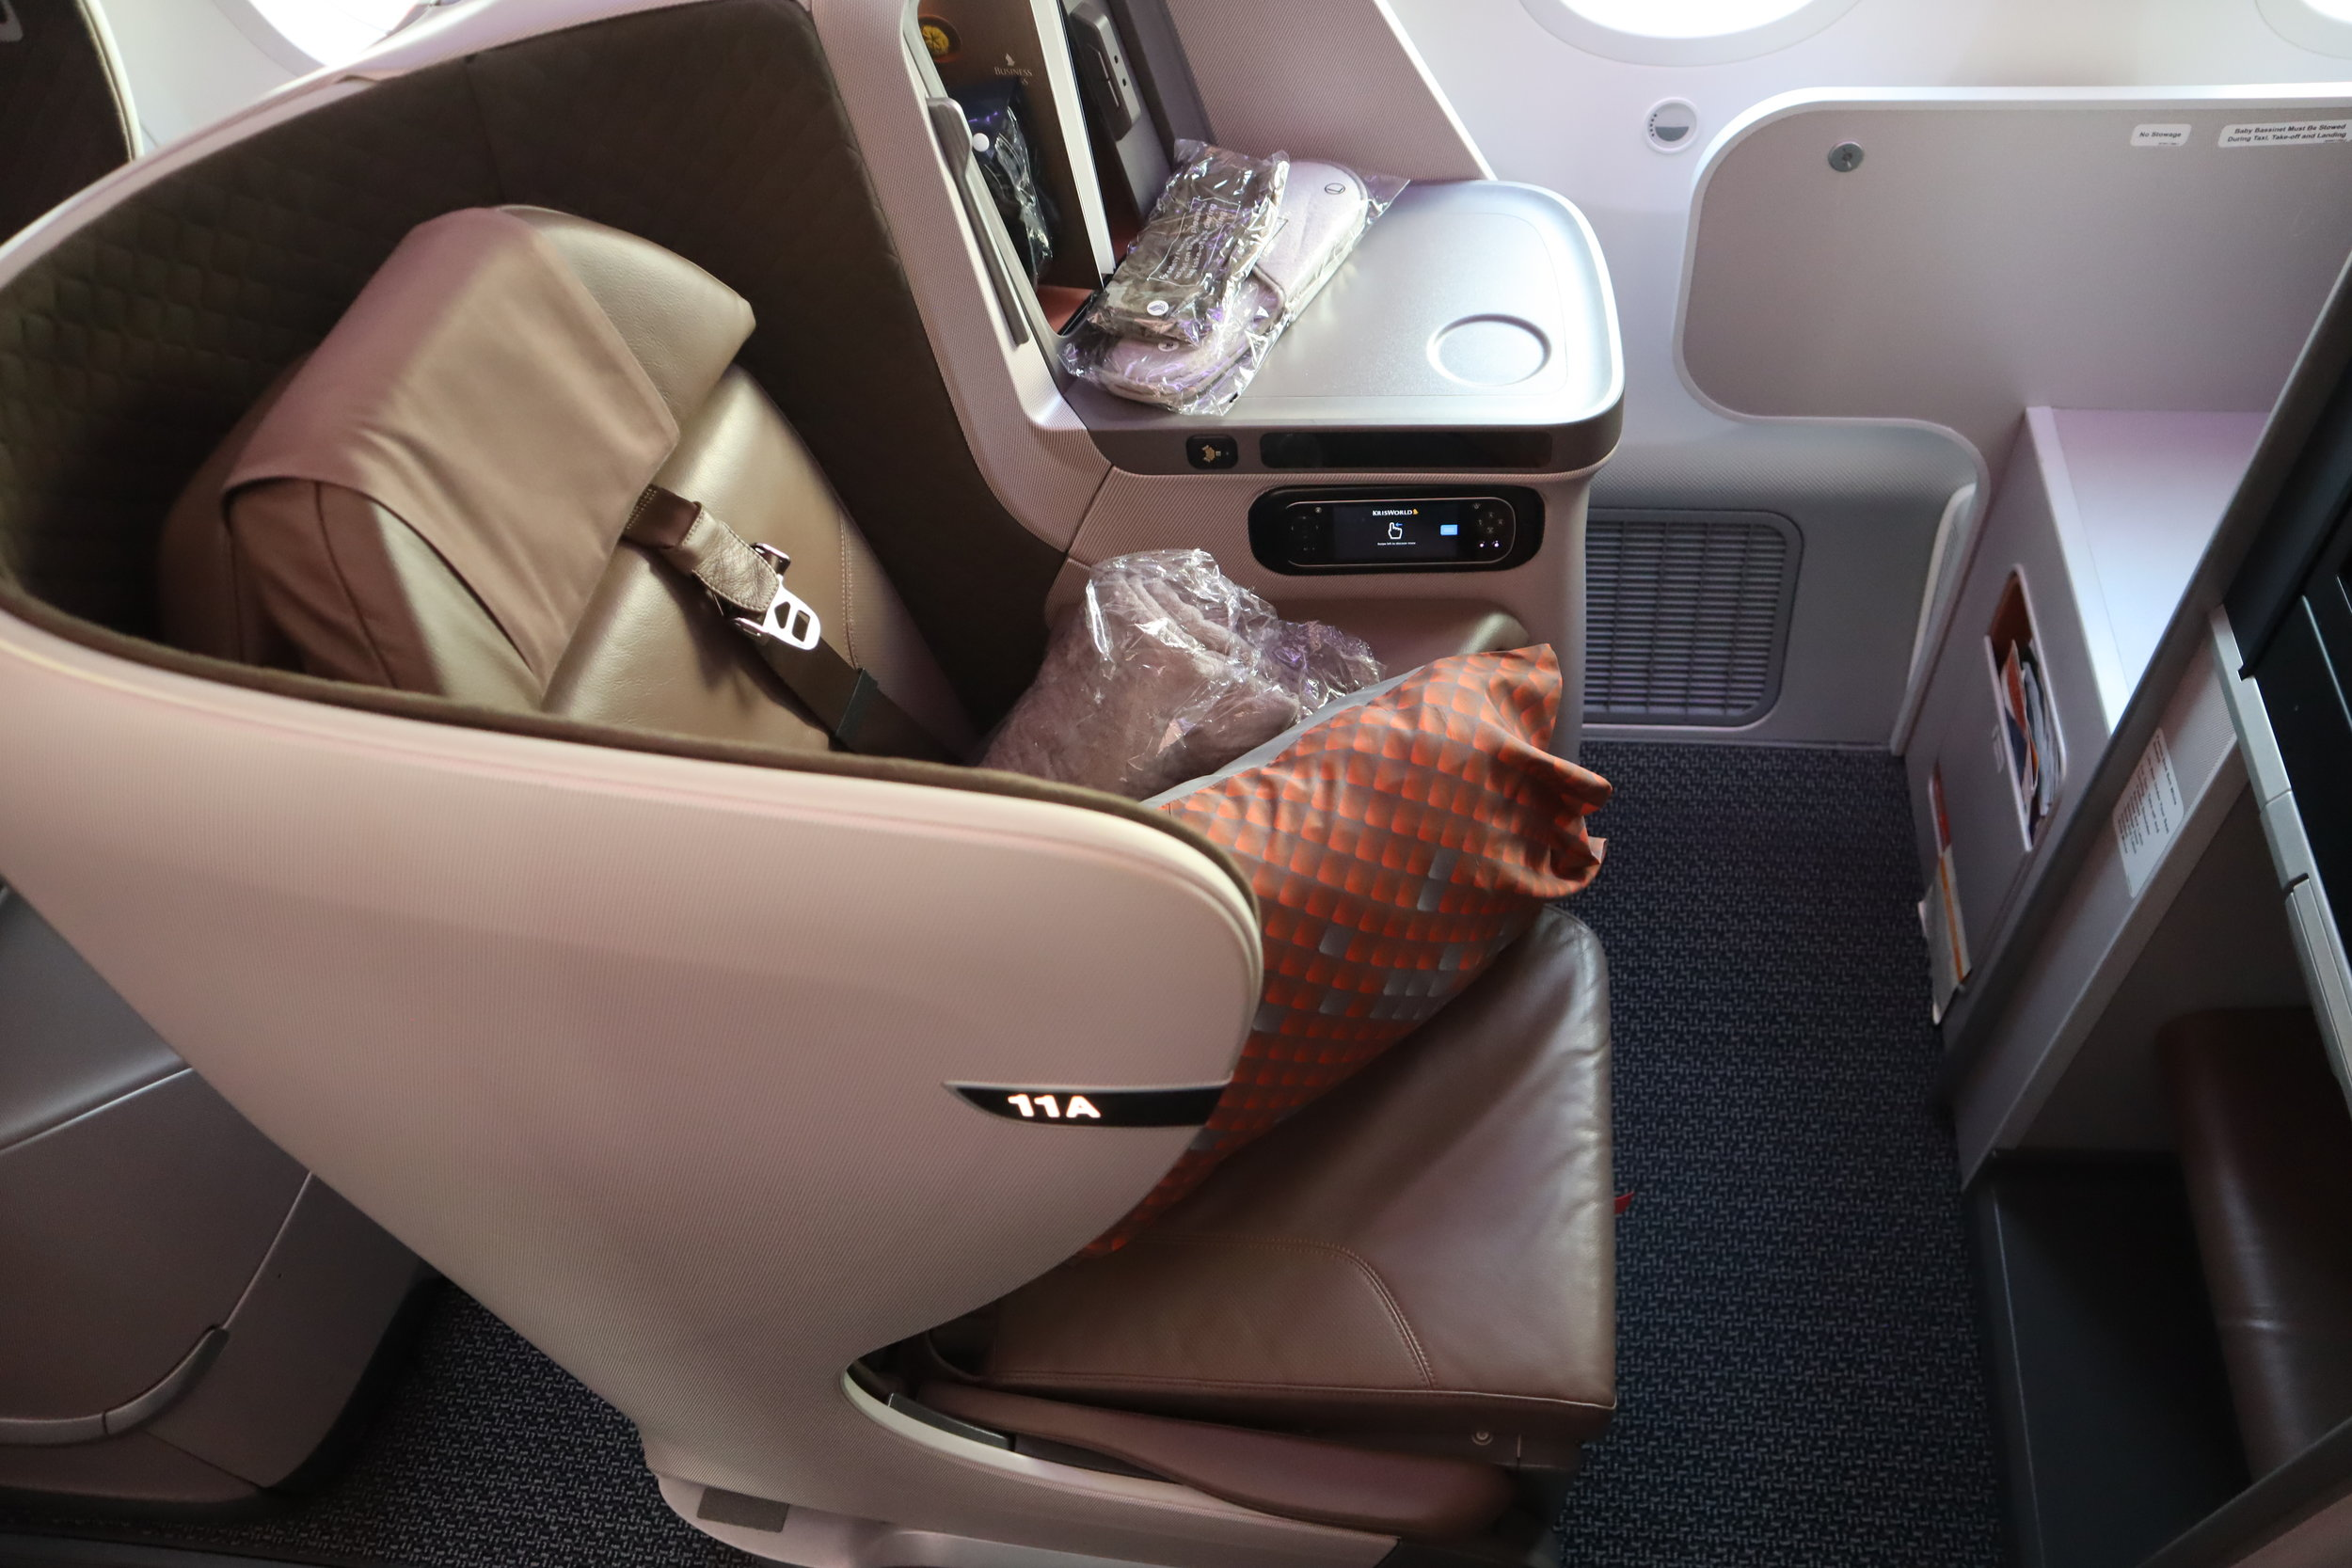 Singapore-Airlines-787-Business-Class-13.jpeg